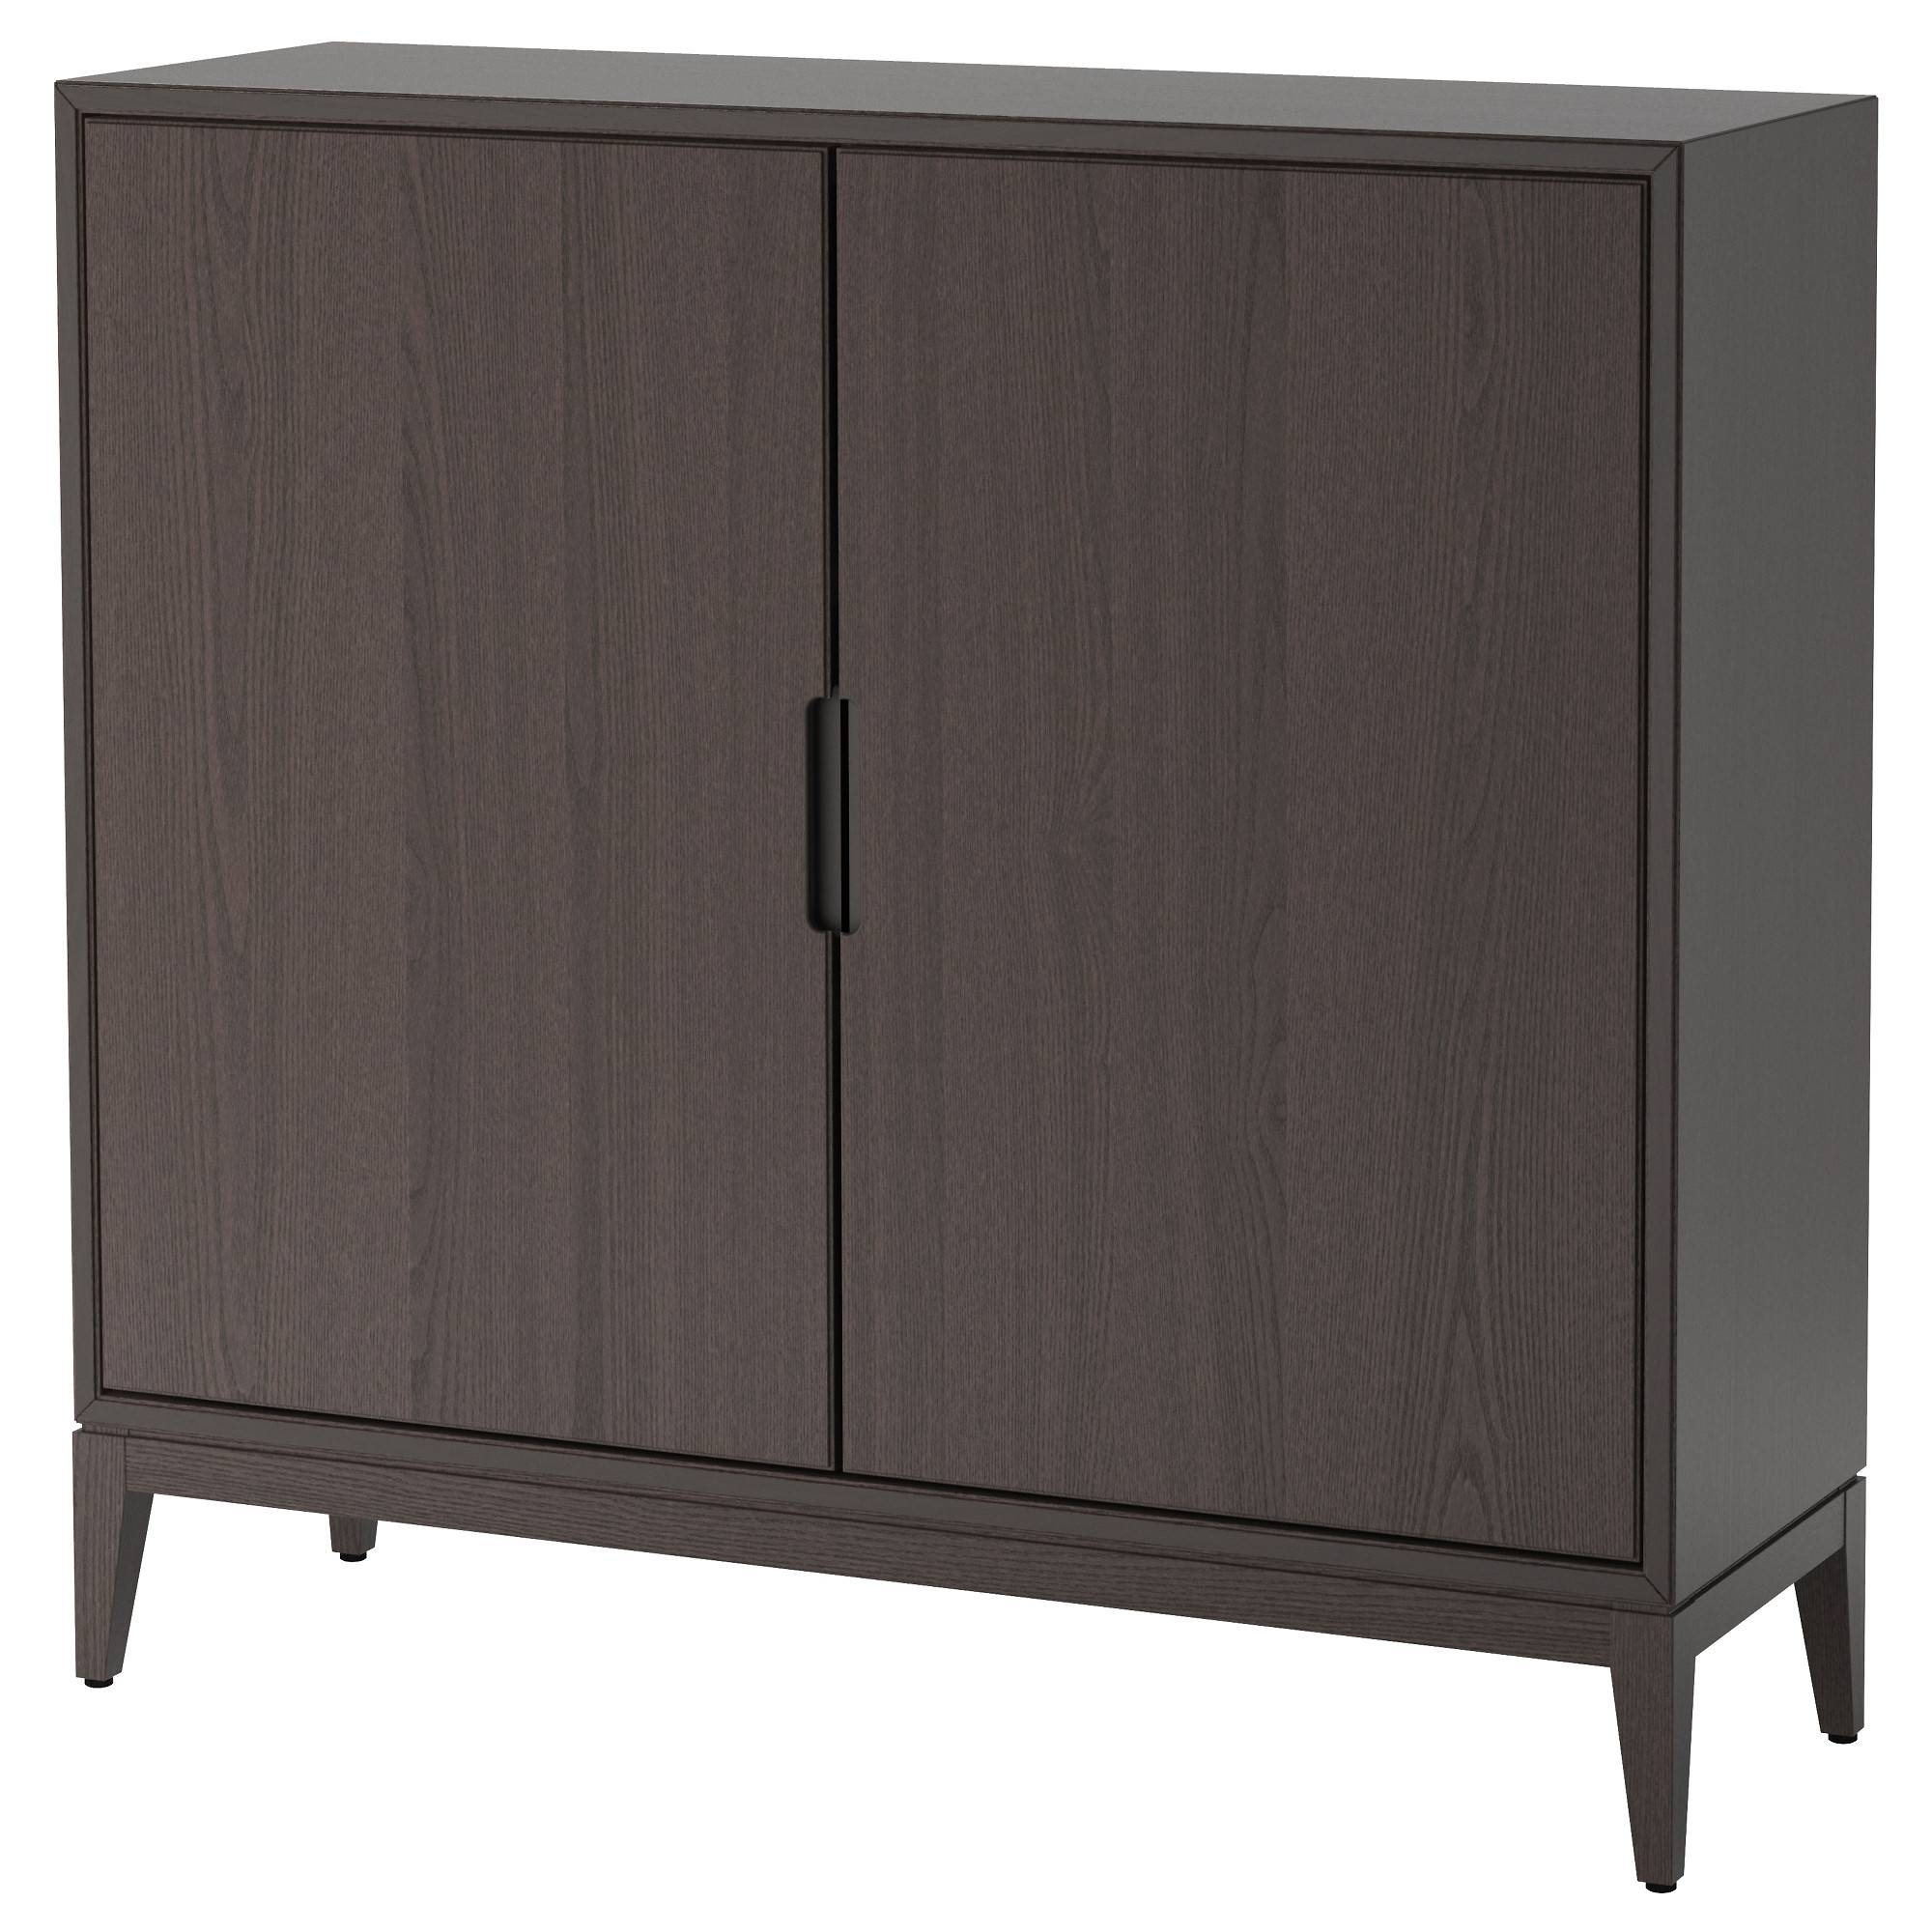 Cabinets & Sideboards - Ikea within Slim Sideboards (Image 10 of 30)